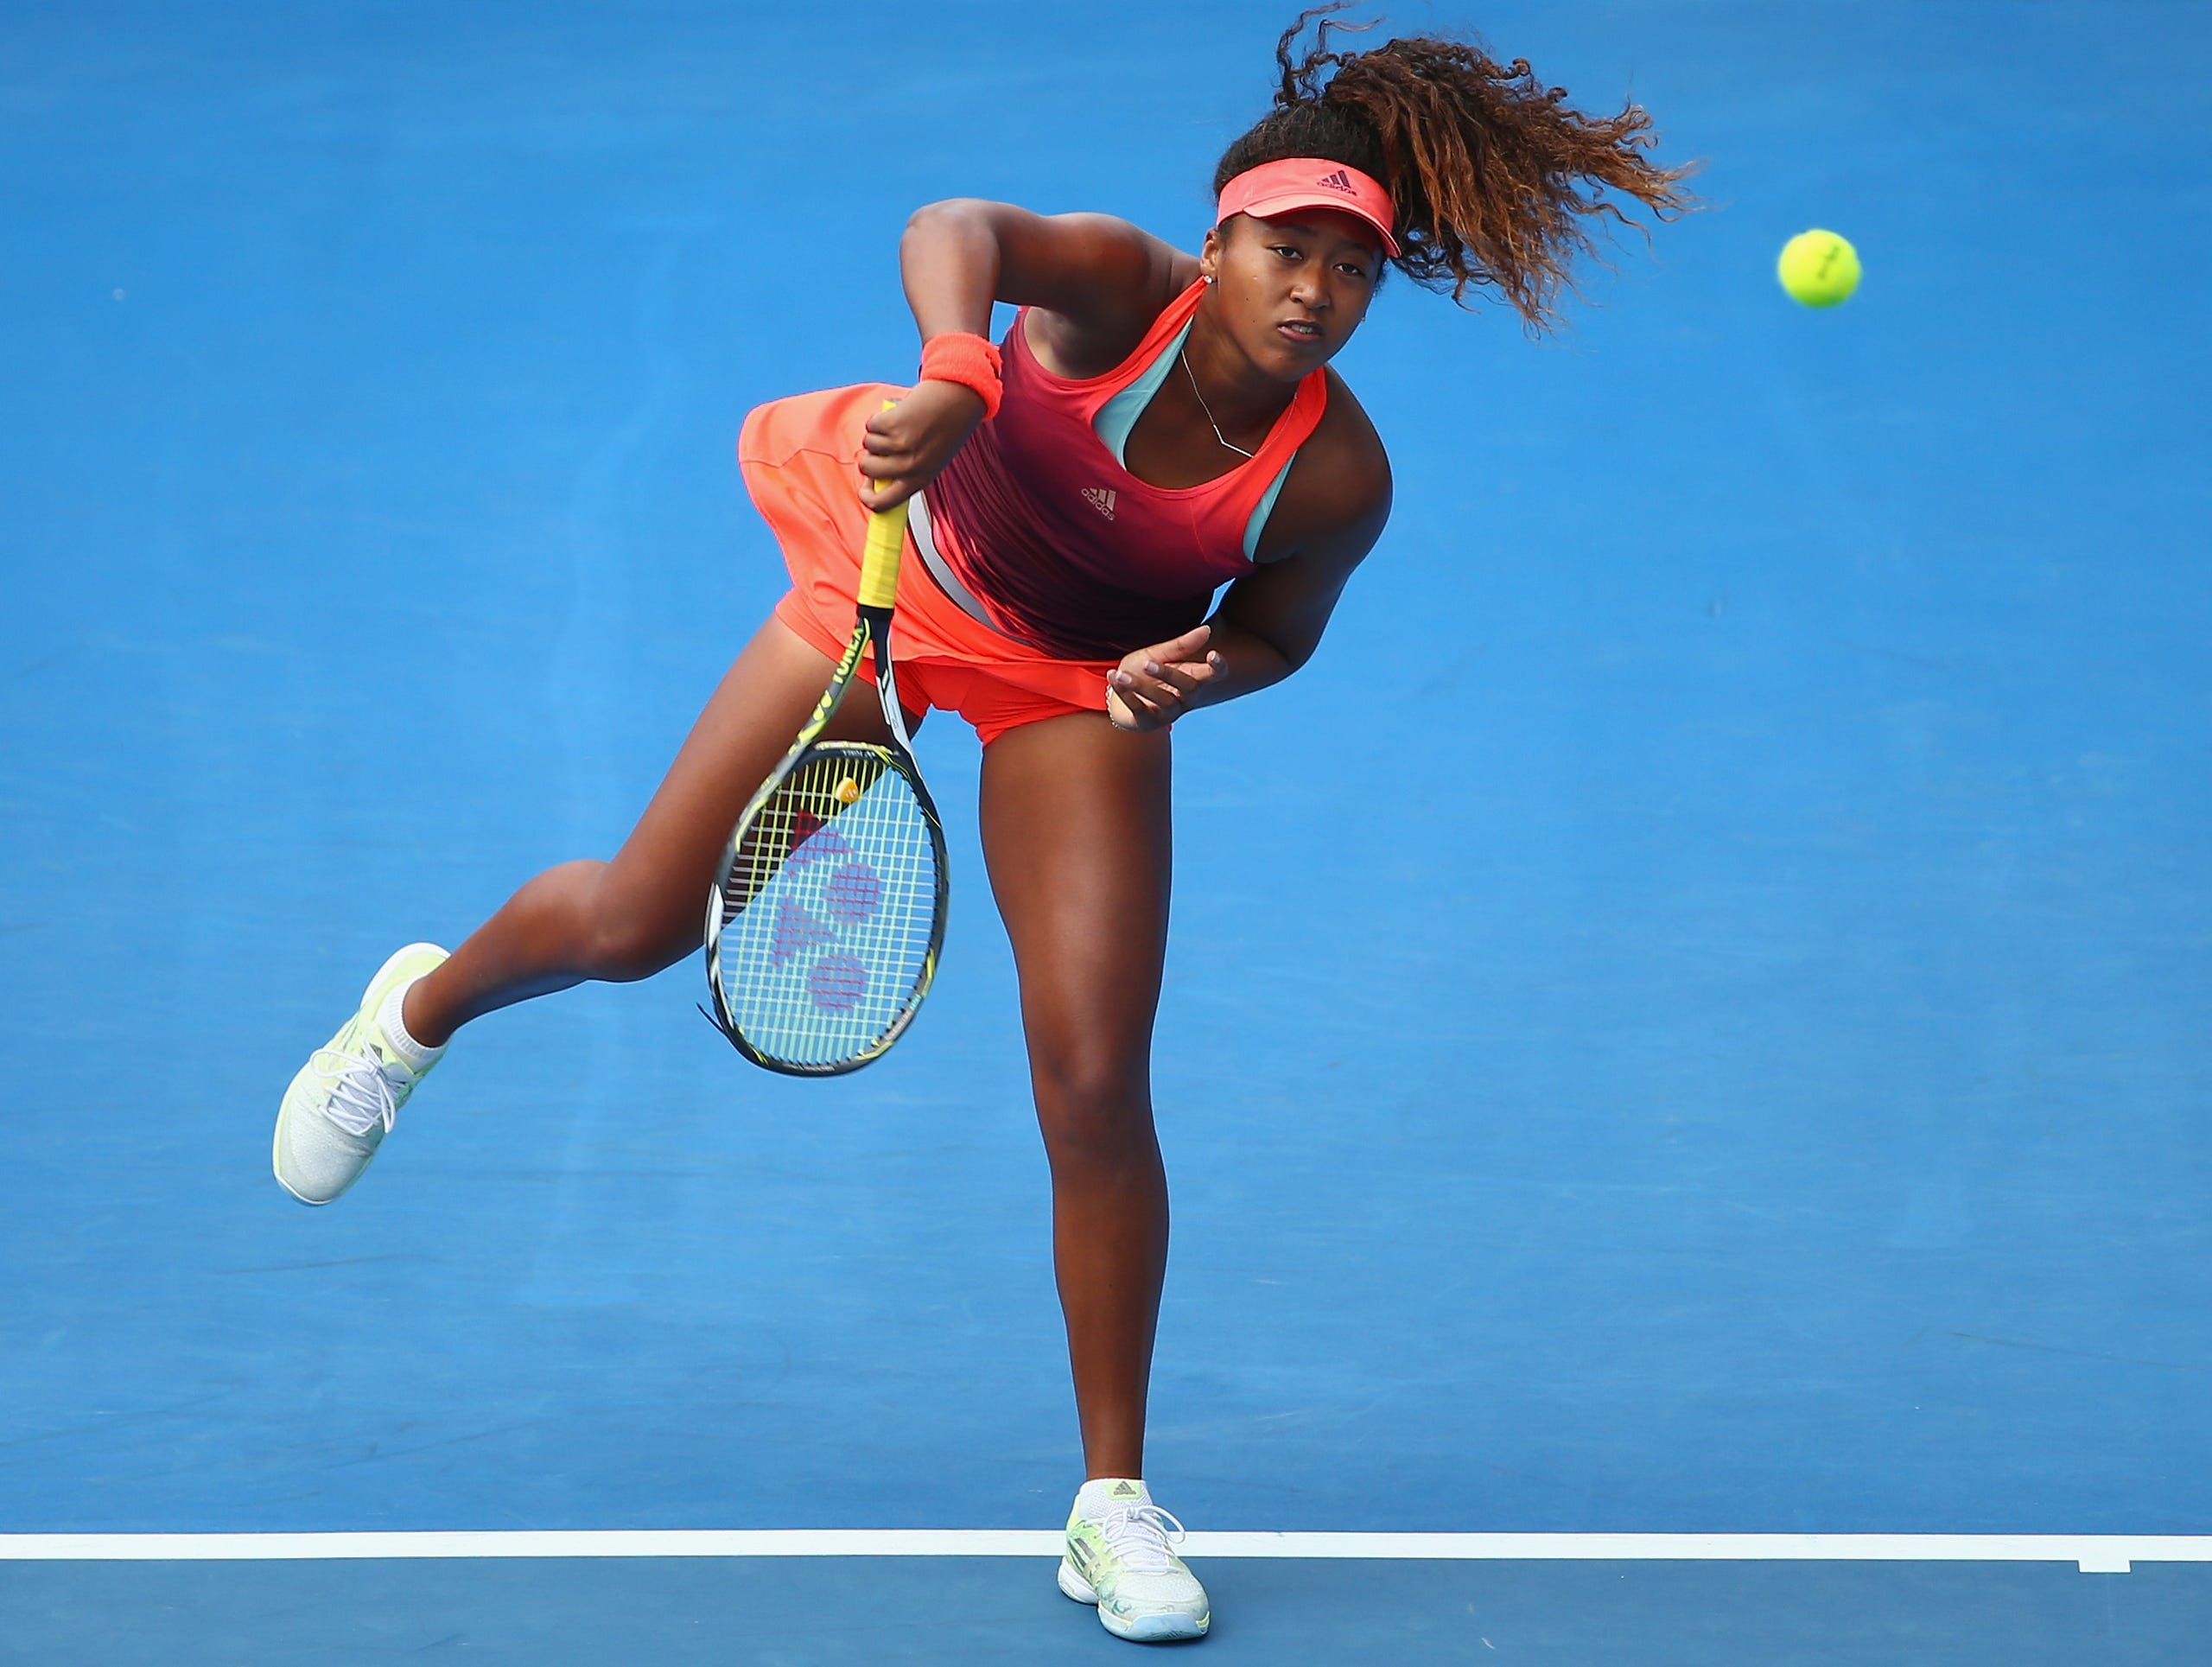 Naomi Osaka of Japan serves in the women's single's match against Jarmila Wolfe of Australia during day two of the 2016 Hobart International at the Domain Tennis Centre on January 11, 2016 in Hobart, Australia.